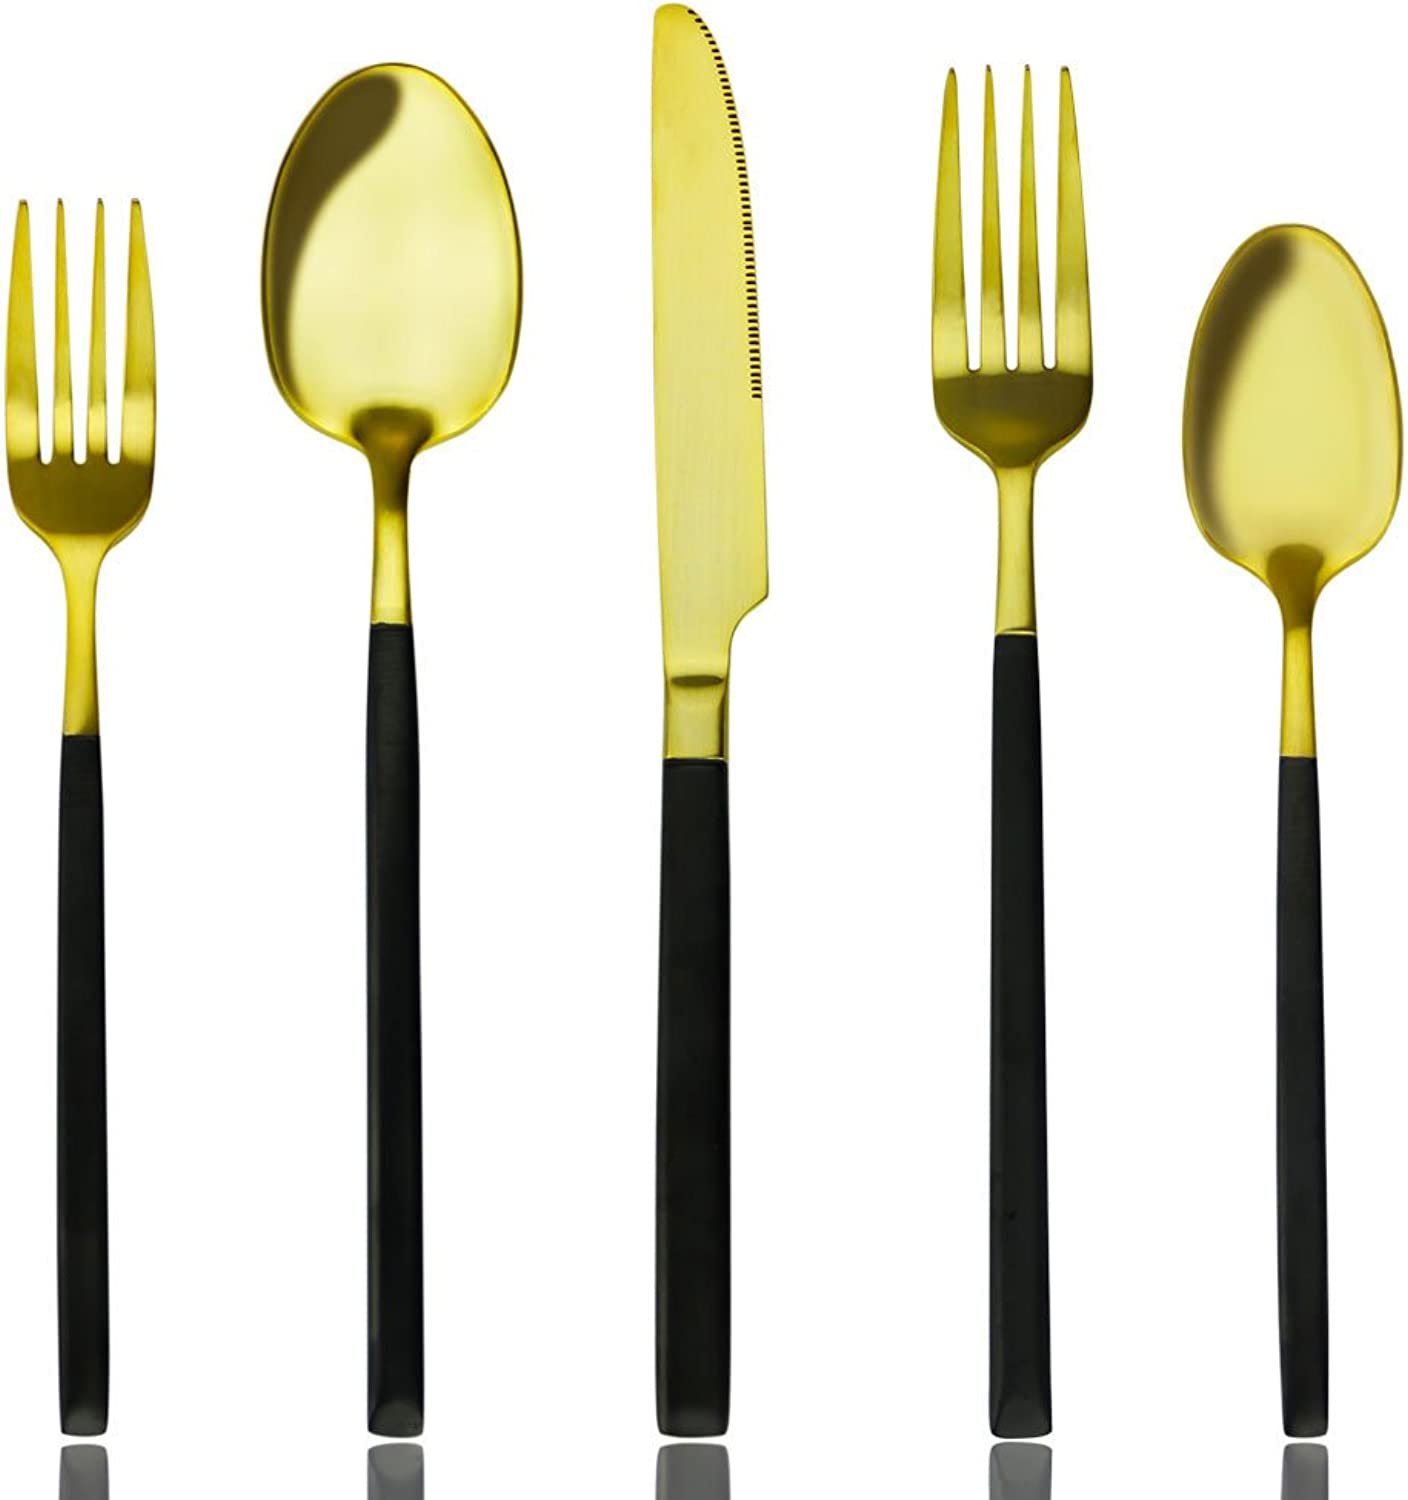 Black and gold Flatware Set, 20 pieces Matte Black and gold Plated 18 10 Stainless Steel Flatware Sets, Service for 4